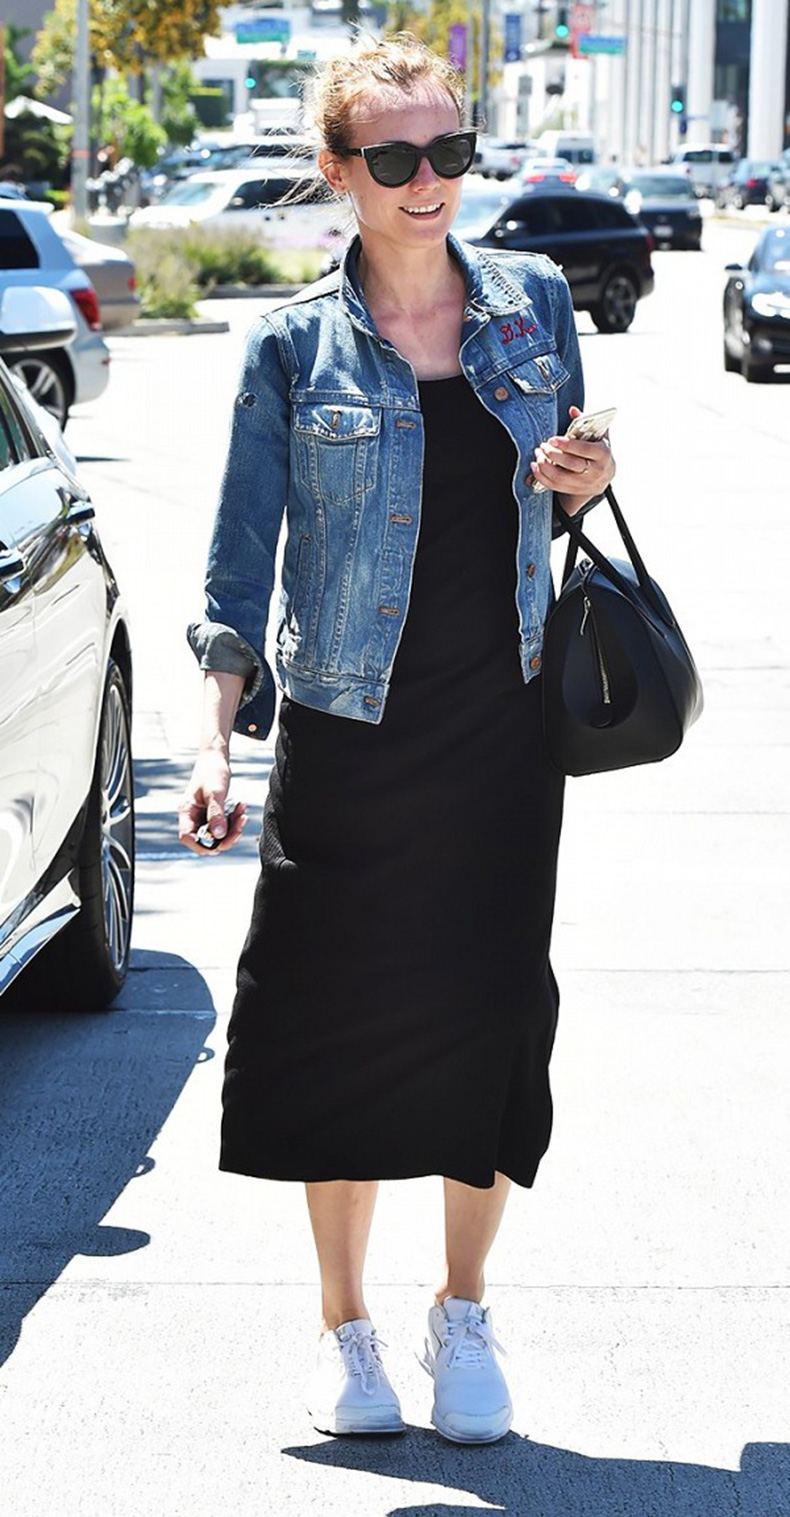 5-cute-celeb-outfits-you-can-re-create-for-way-less-1752887-1461990497.600x0c